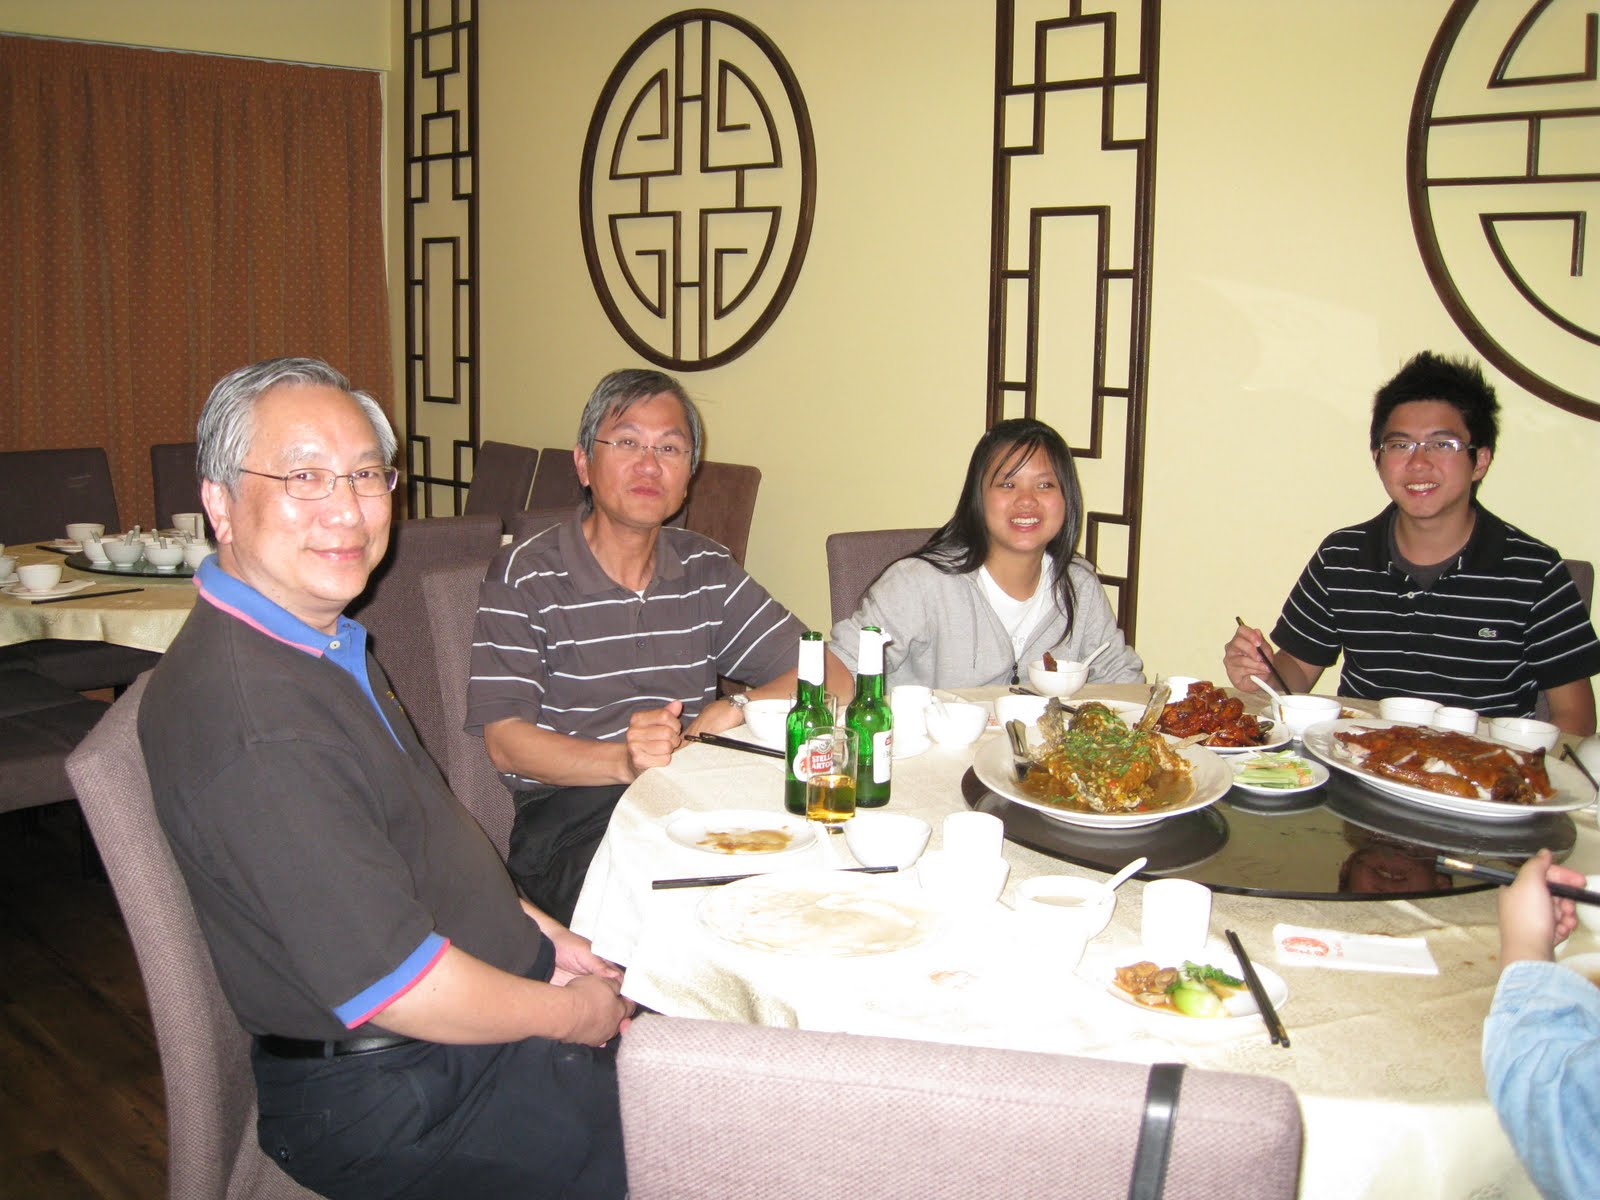 Christian friendship fellowship nz